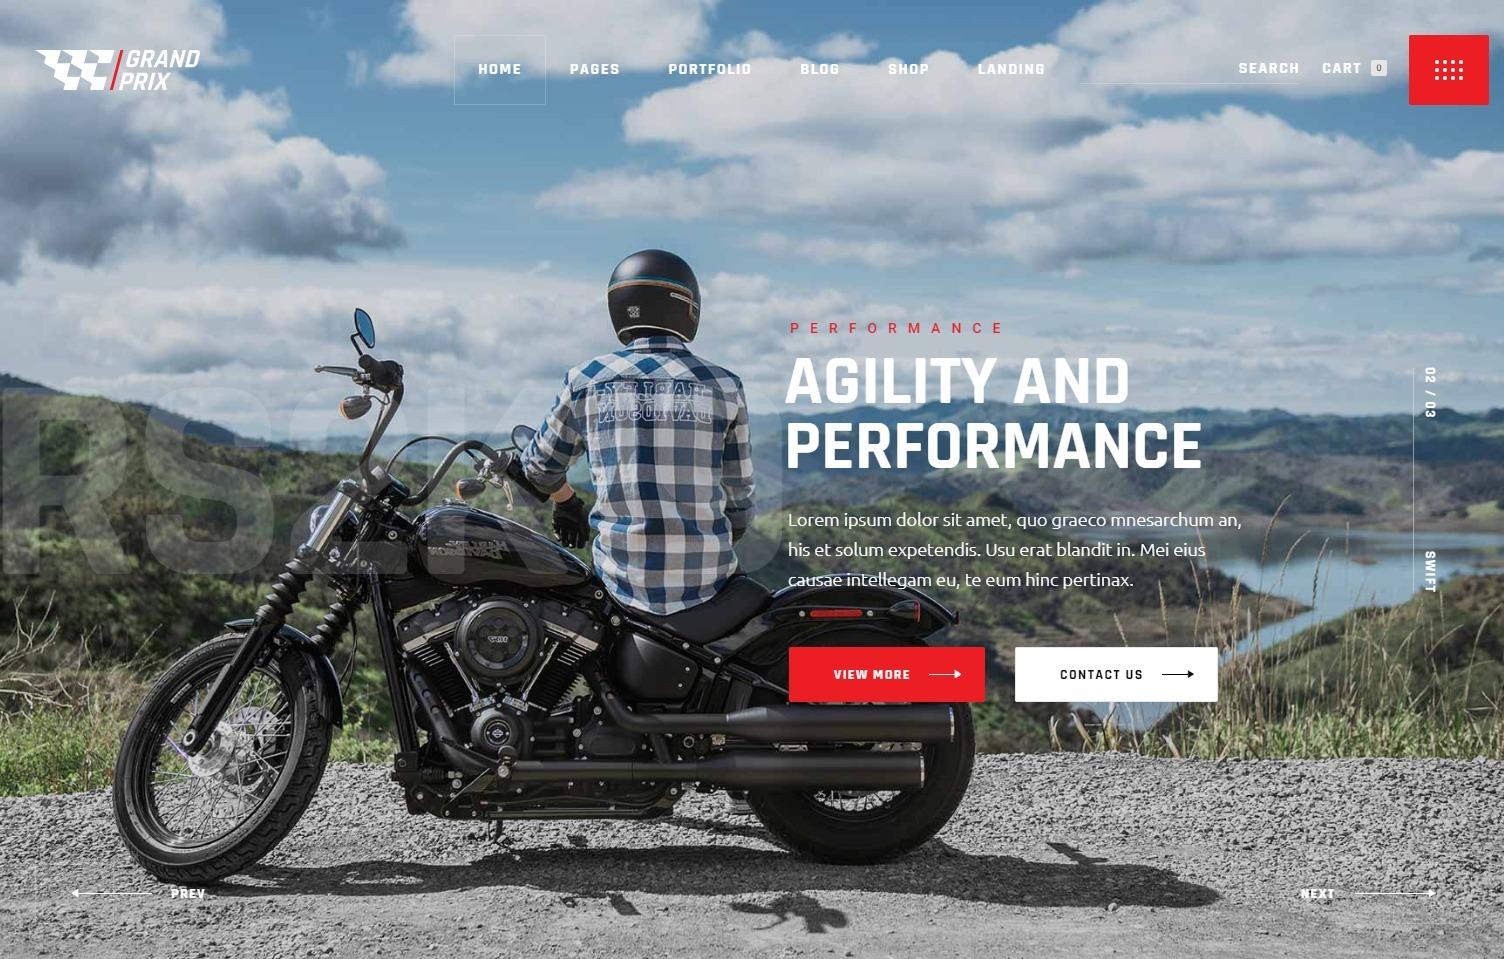 Grand Prix WordPress eCommerce Theme for Automotive Products